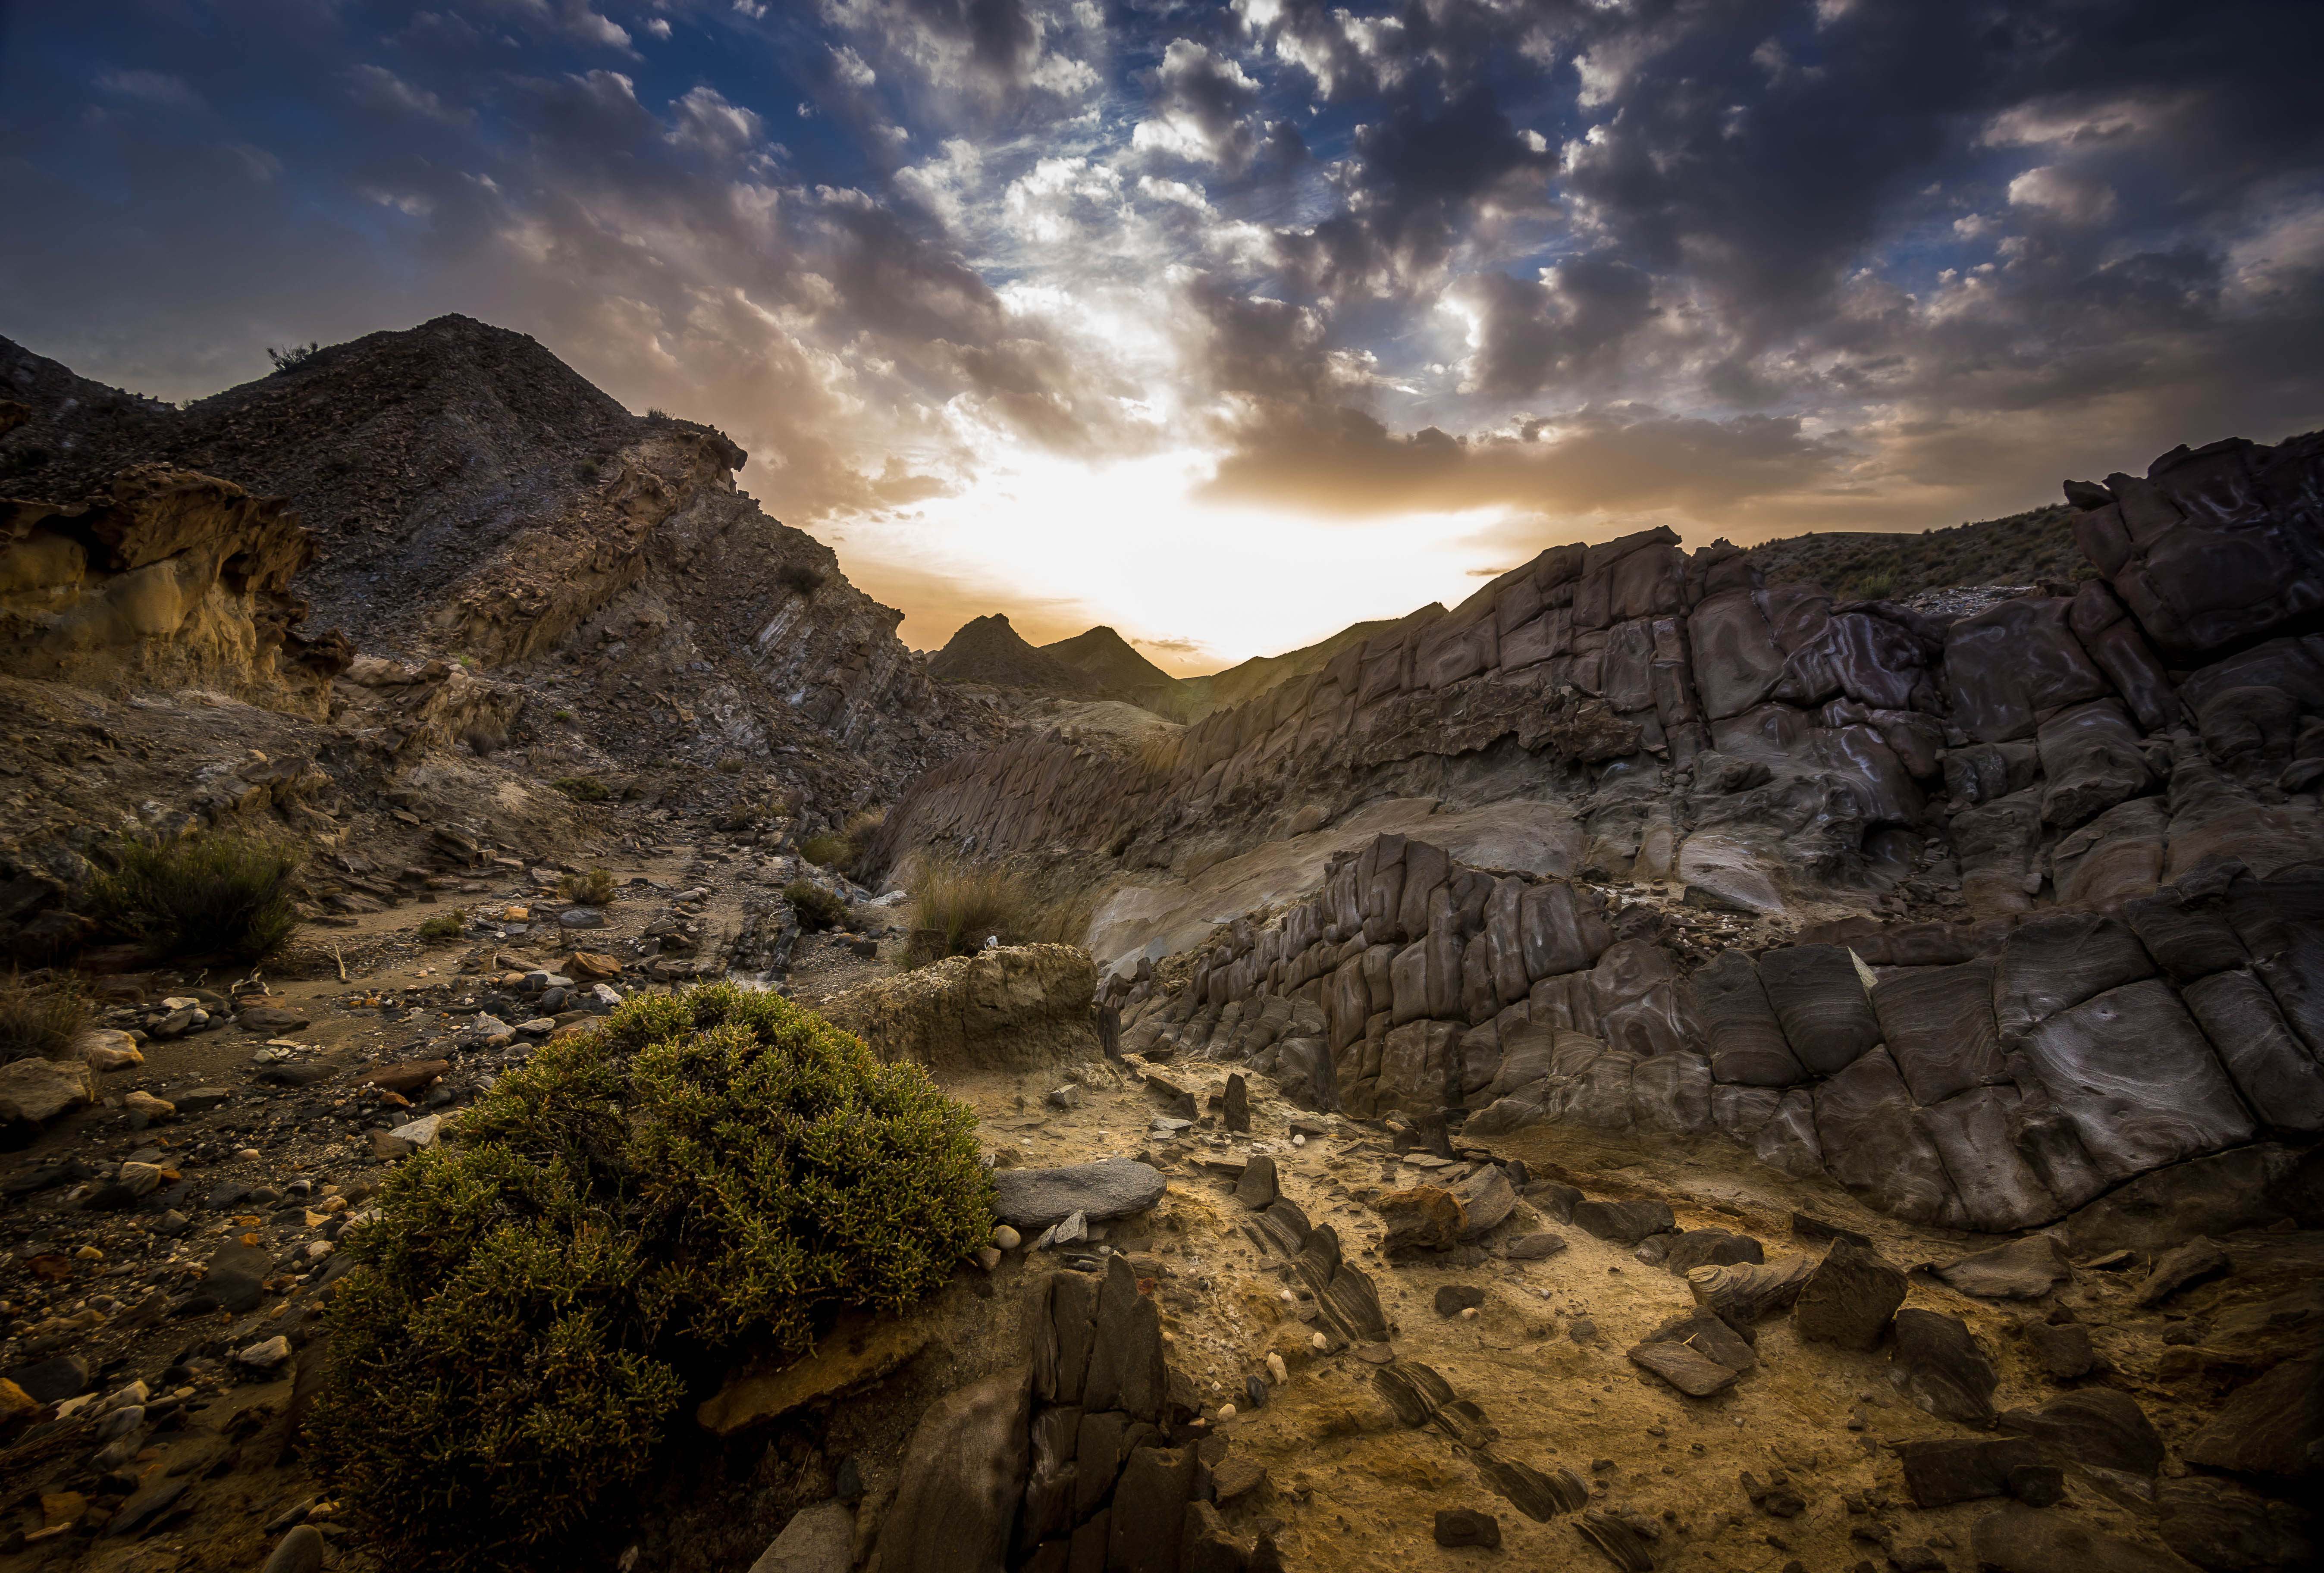 A_Sunrise_in_the_Tabernas_Desert.jpg